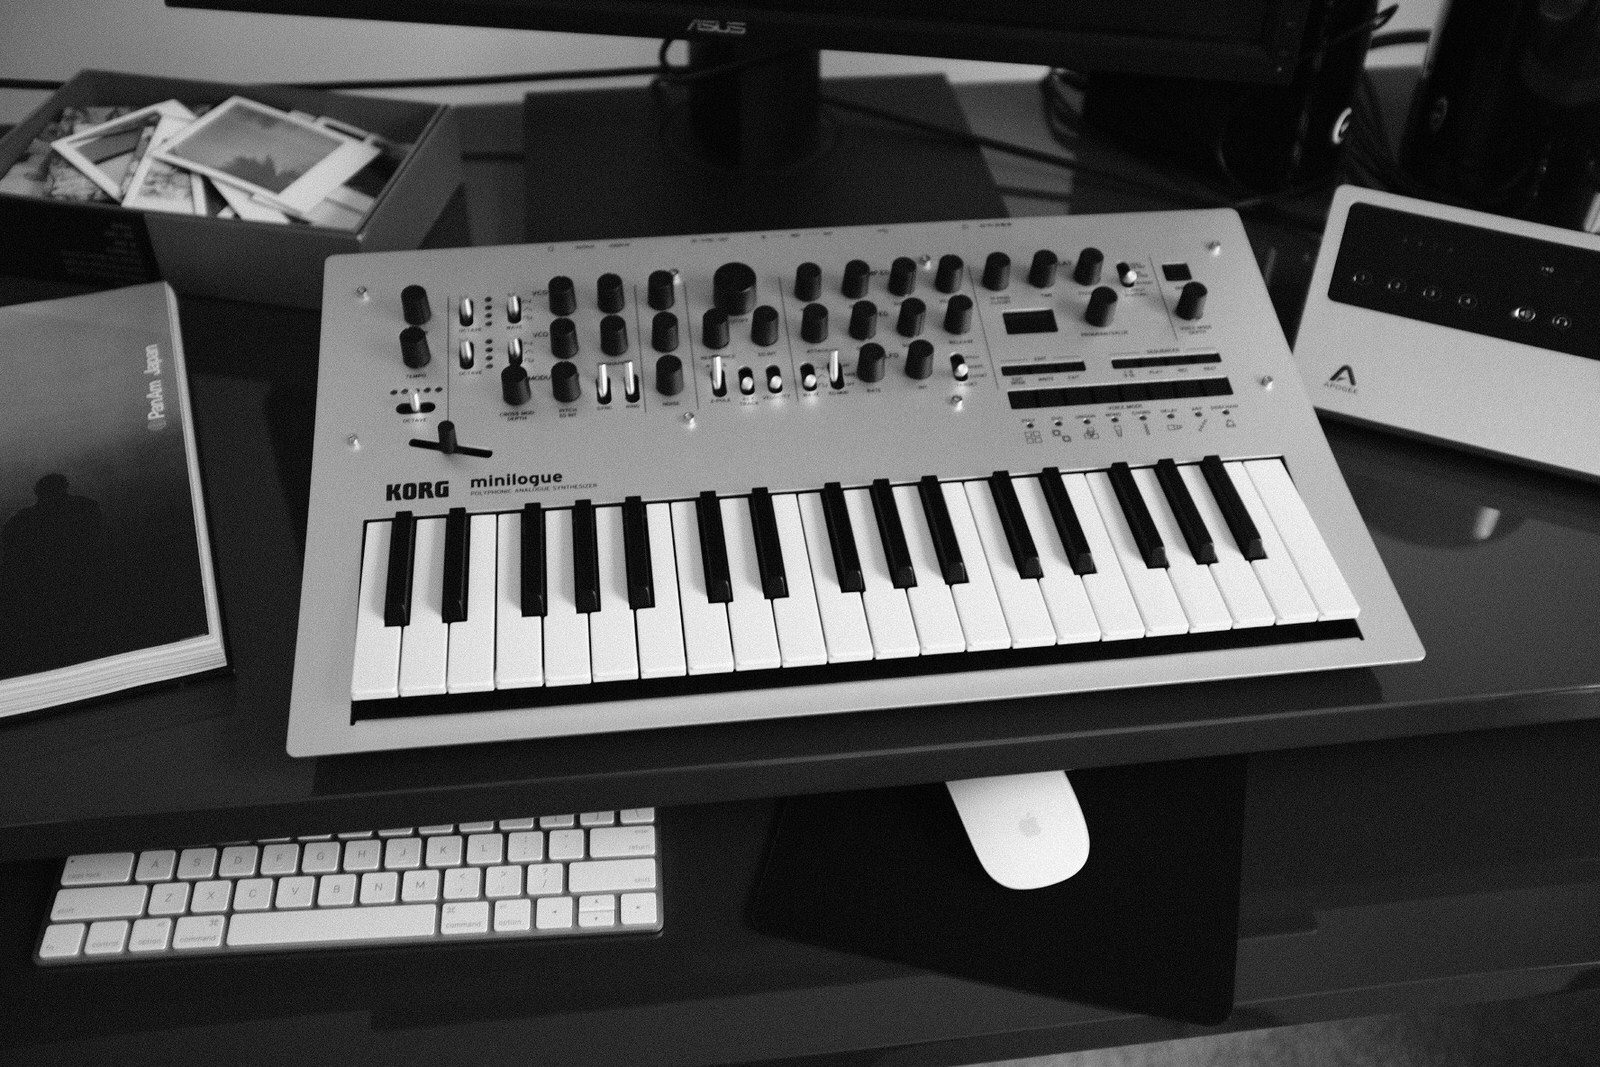 An image of the Korg Minilogue.